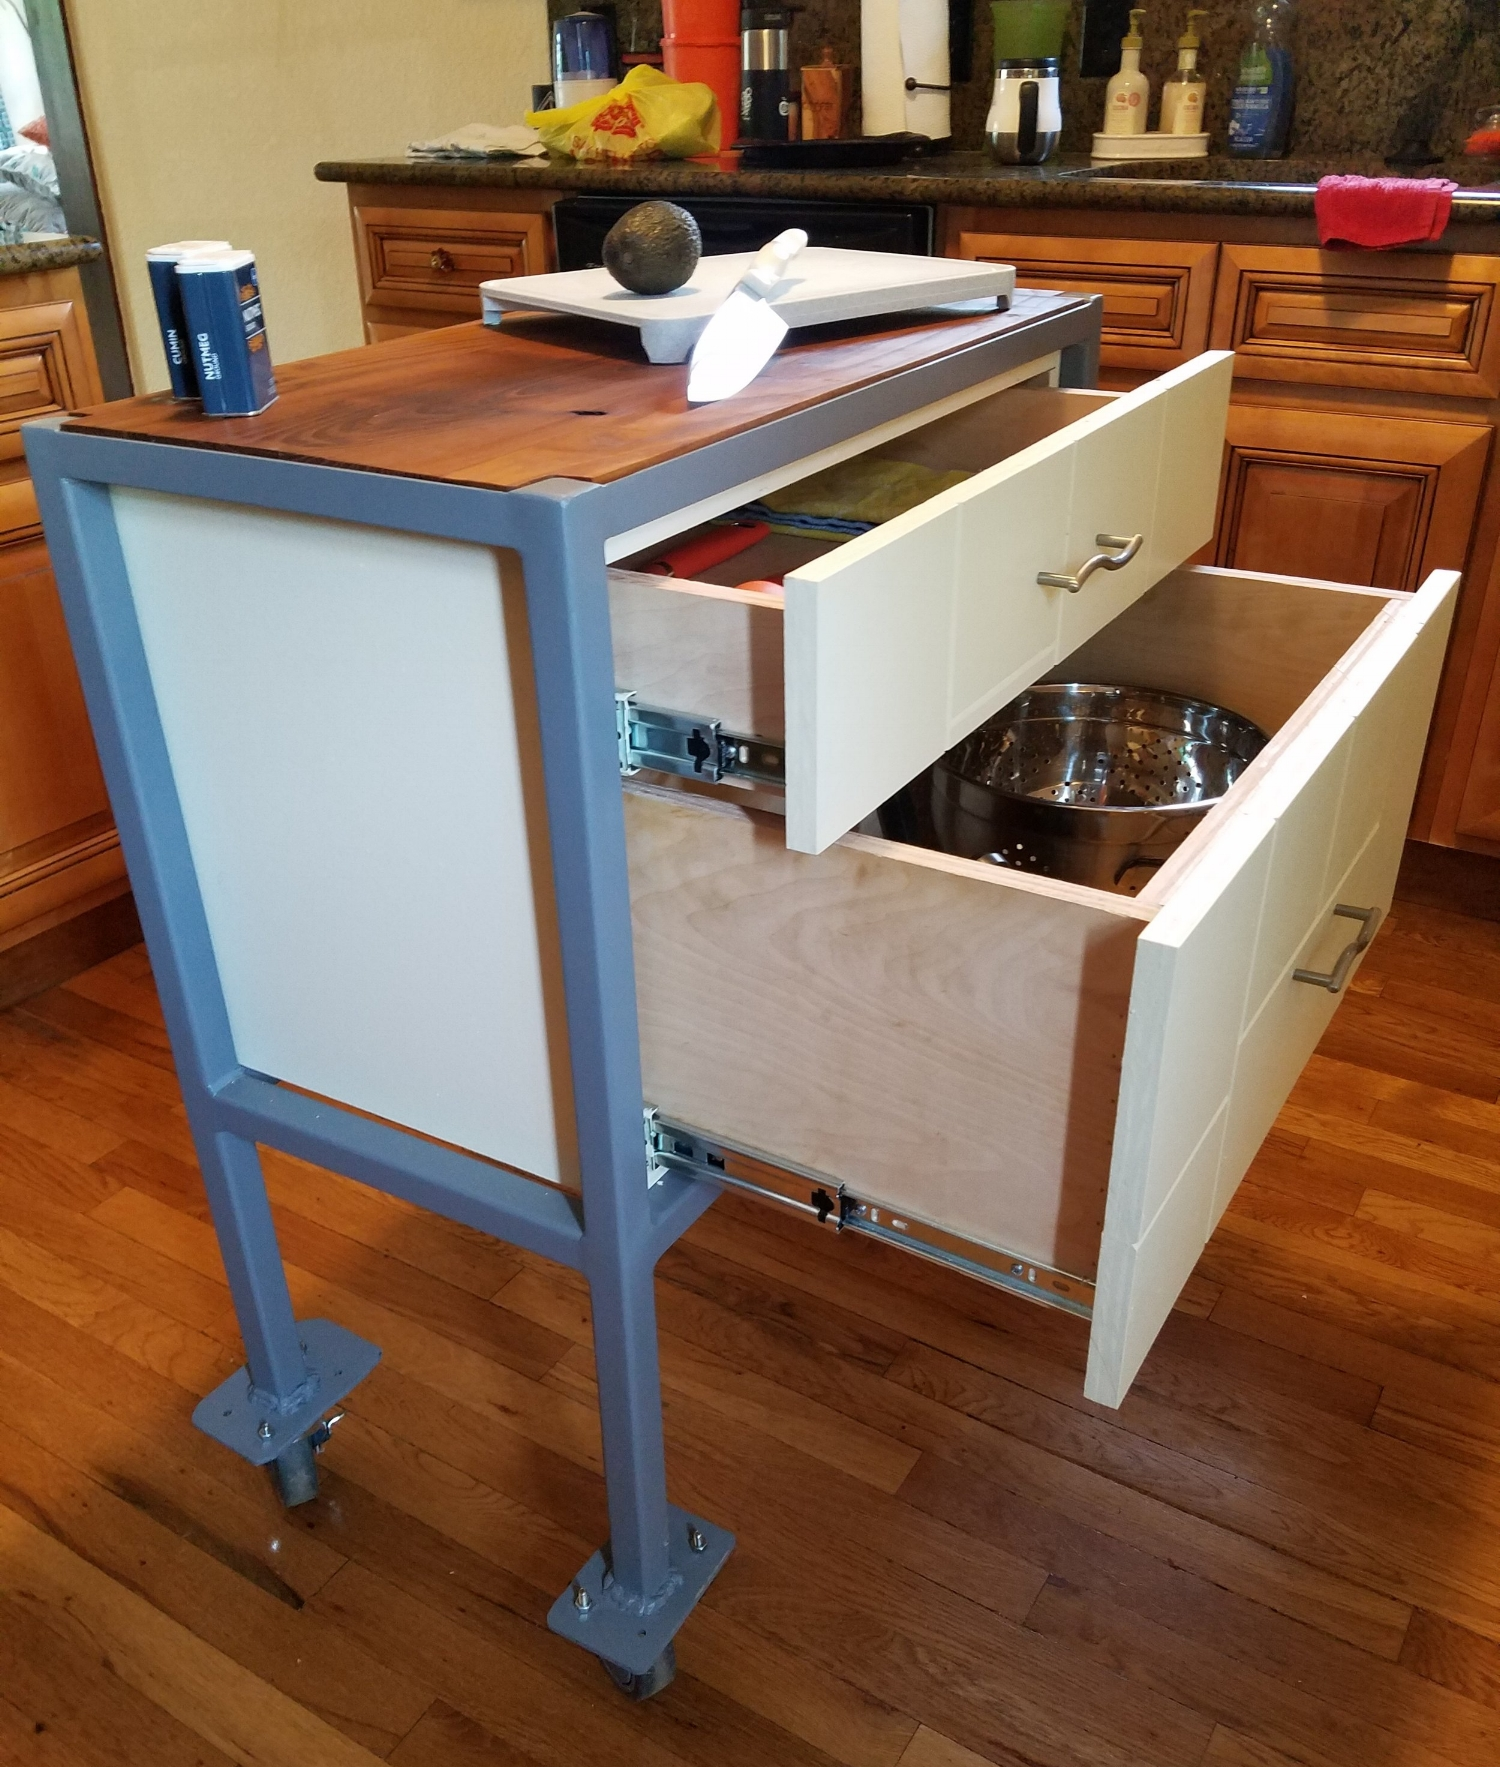 Kitchen Island Cart - Ideal for the small kitchen that needs flexible working and storage space, this sturdy steel frame used to be a utility cart in a mechanic shop for commercial trucks. The painted cabinet has two soft close drawers, and the Russian Olive wood top is finished with food-safe bee's wax and mineral oil.